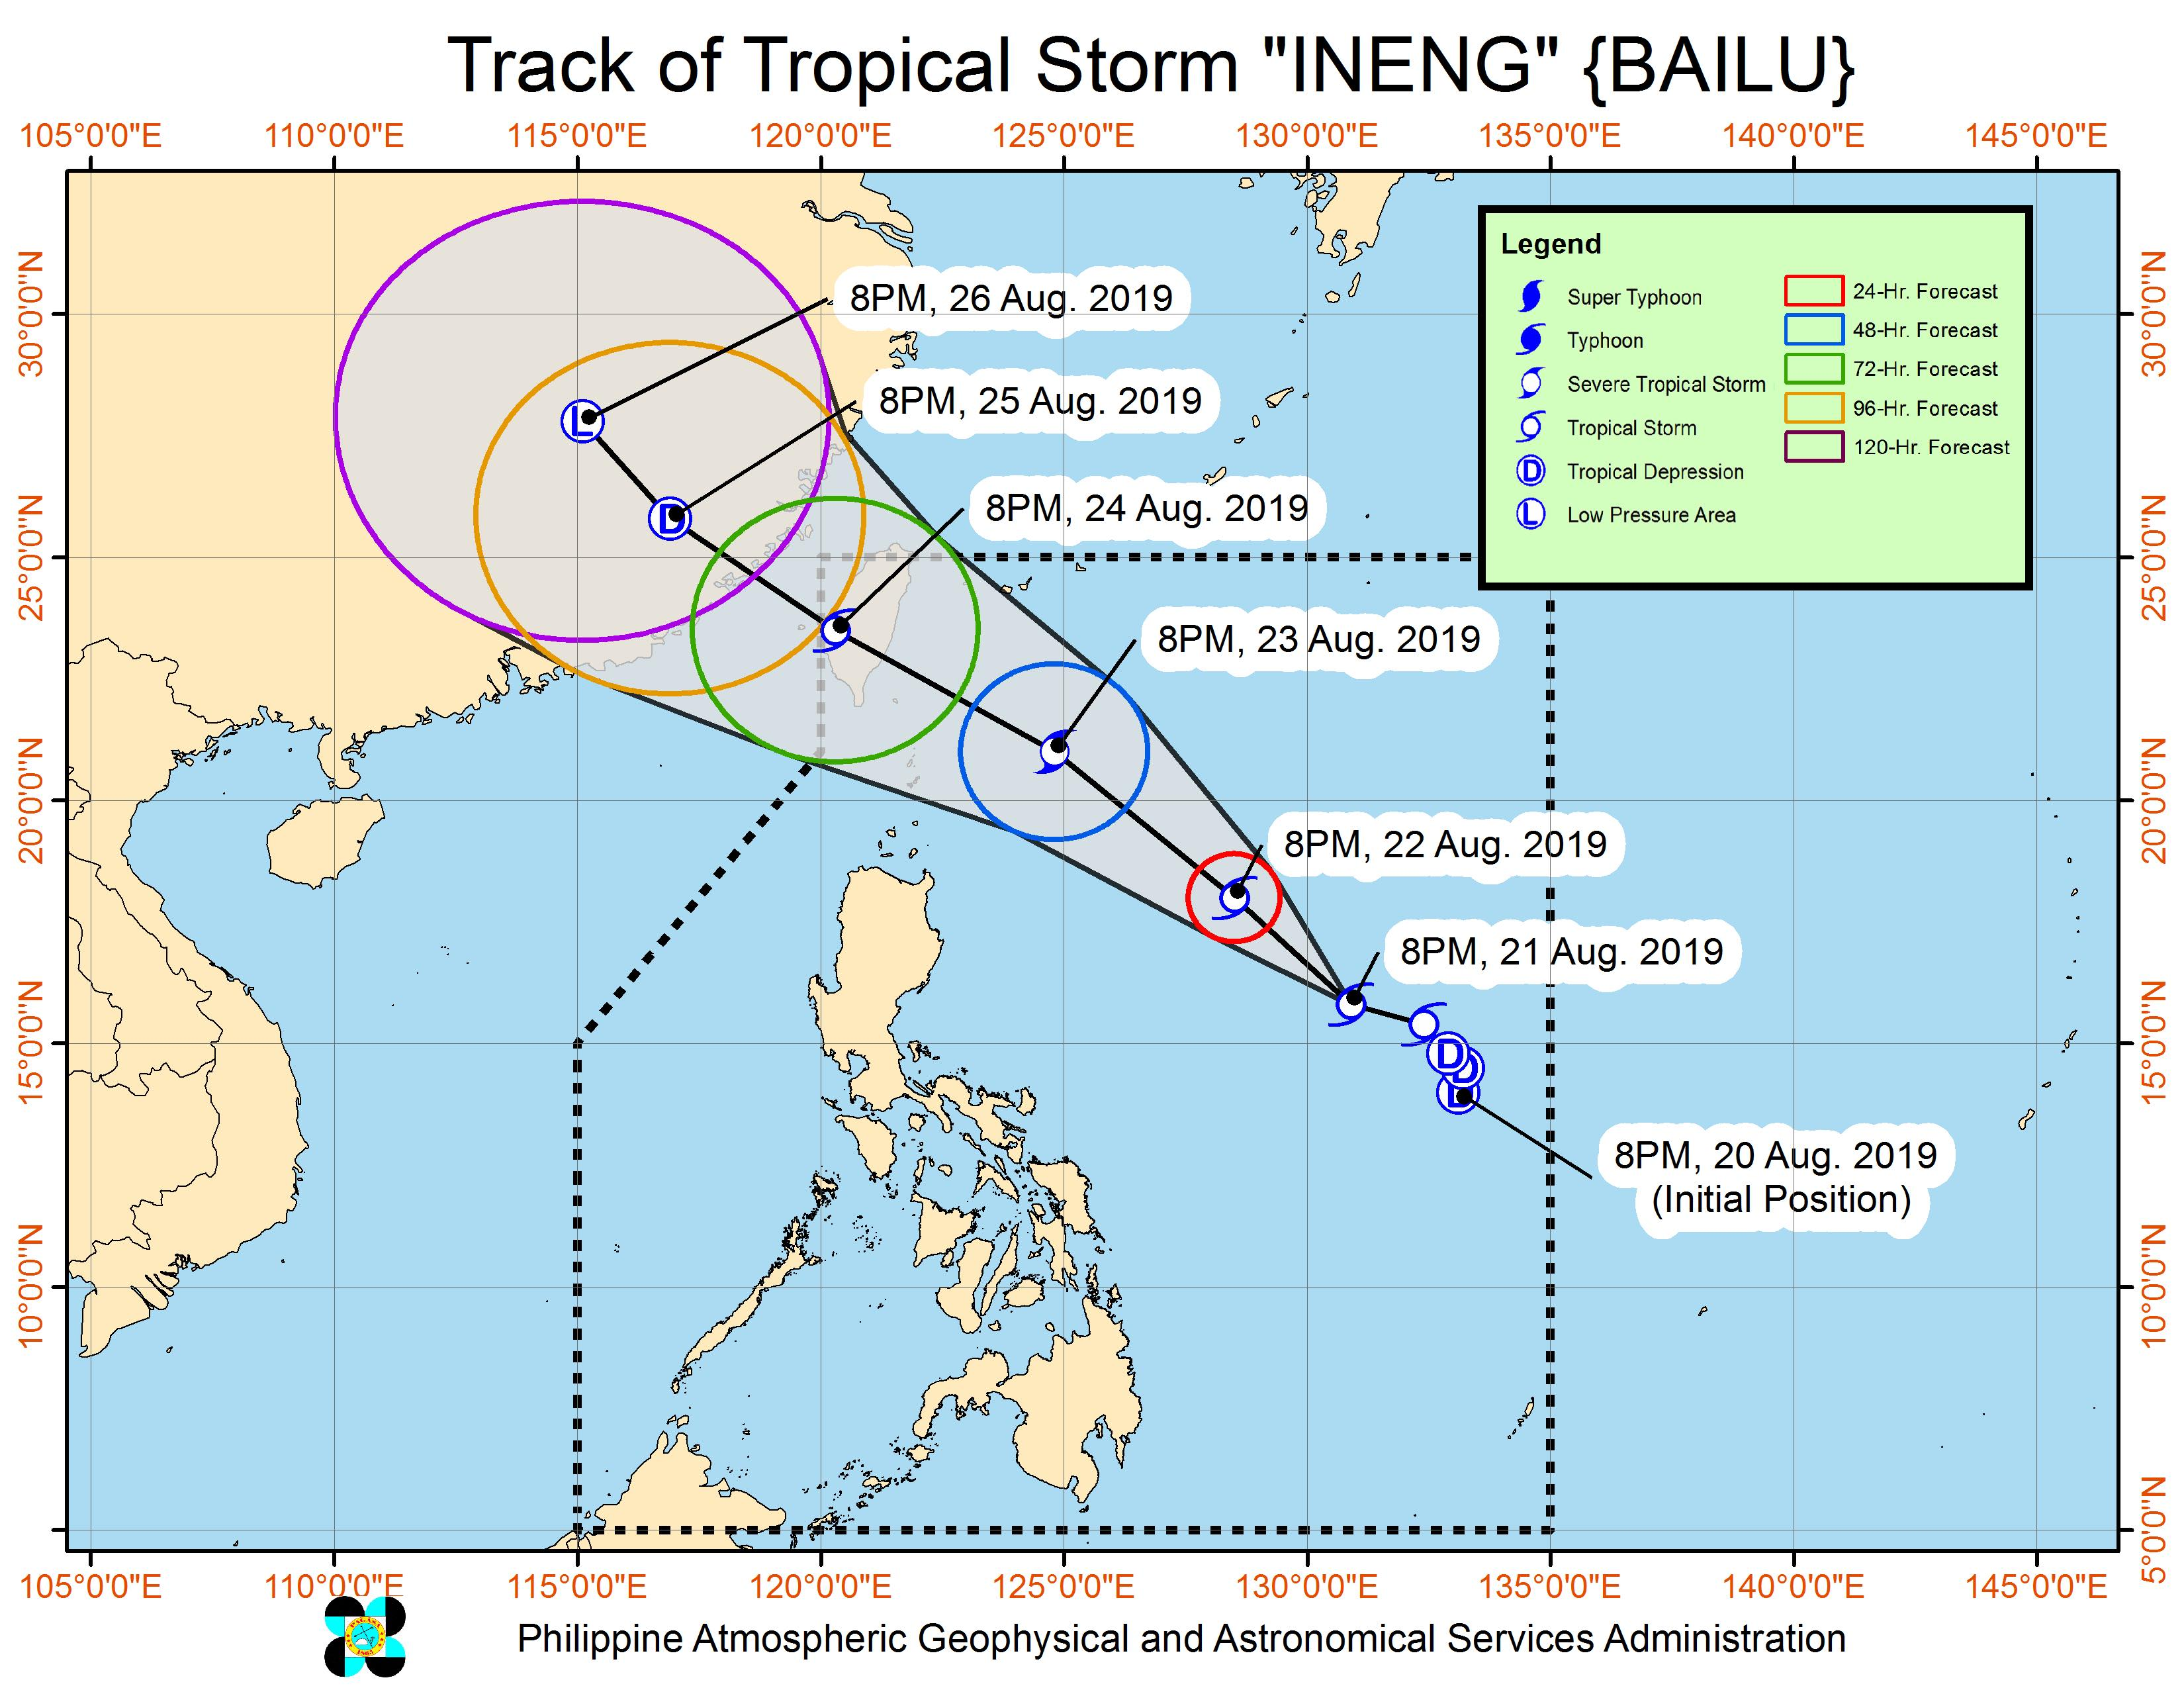 Forecast track of Tropical Storm Ineng (Bailu) as of August 21, 2019, 11 pm. Image from PAGASA